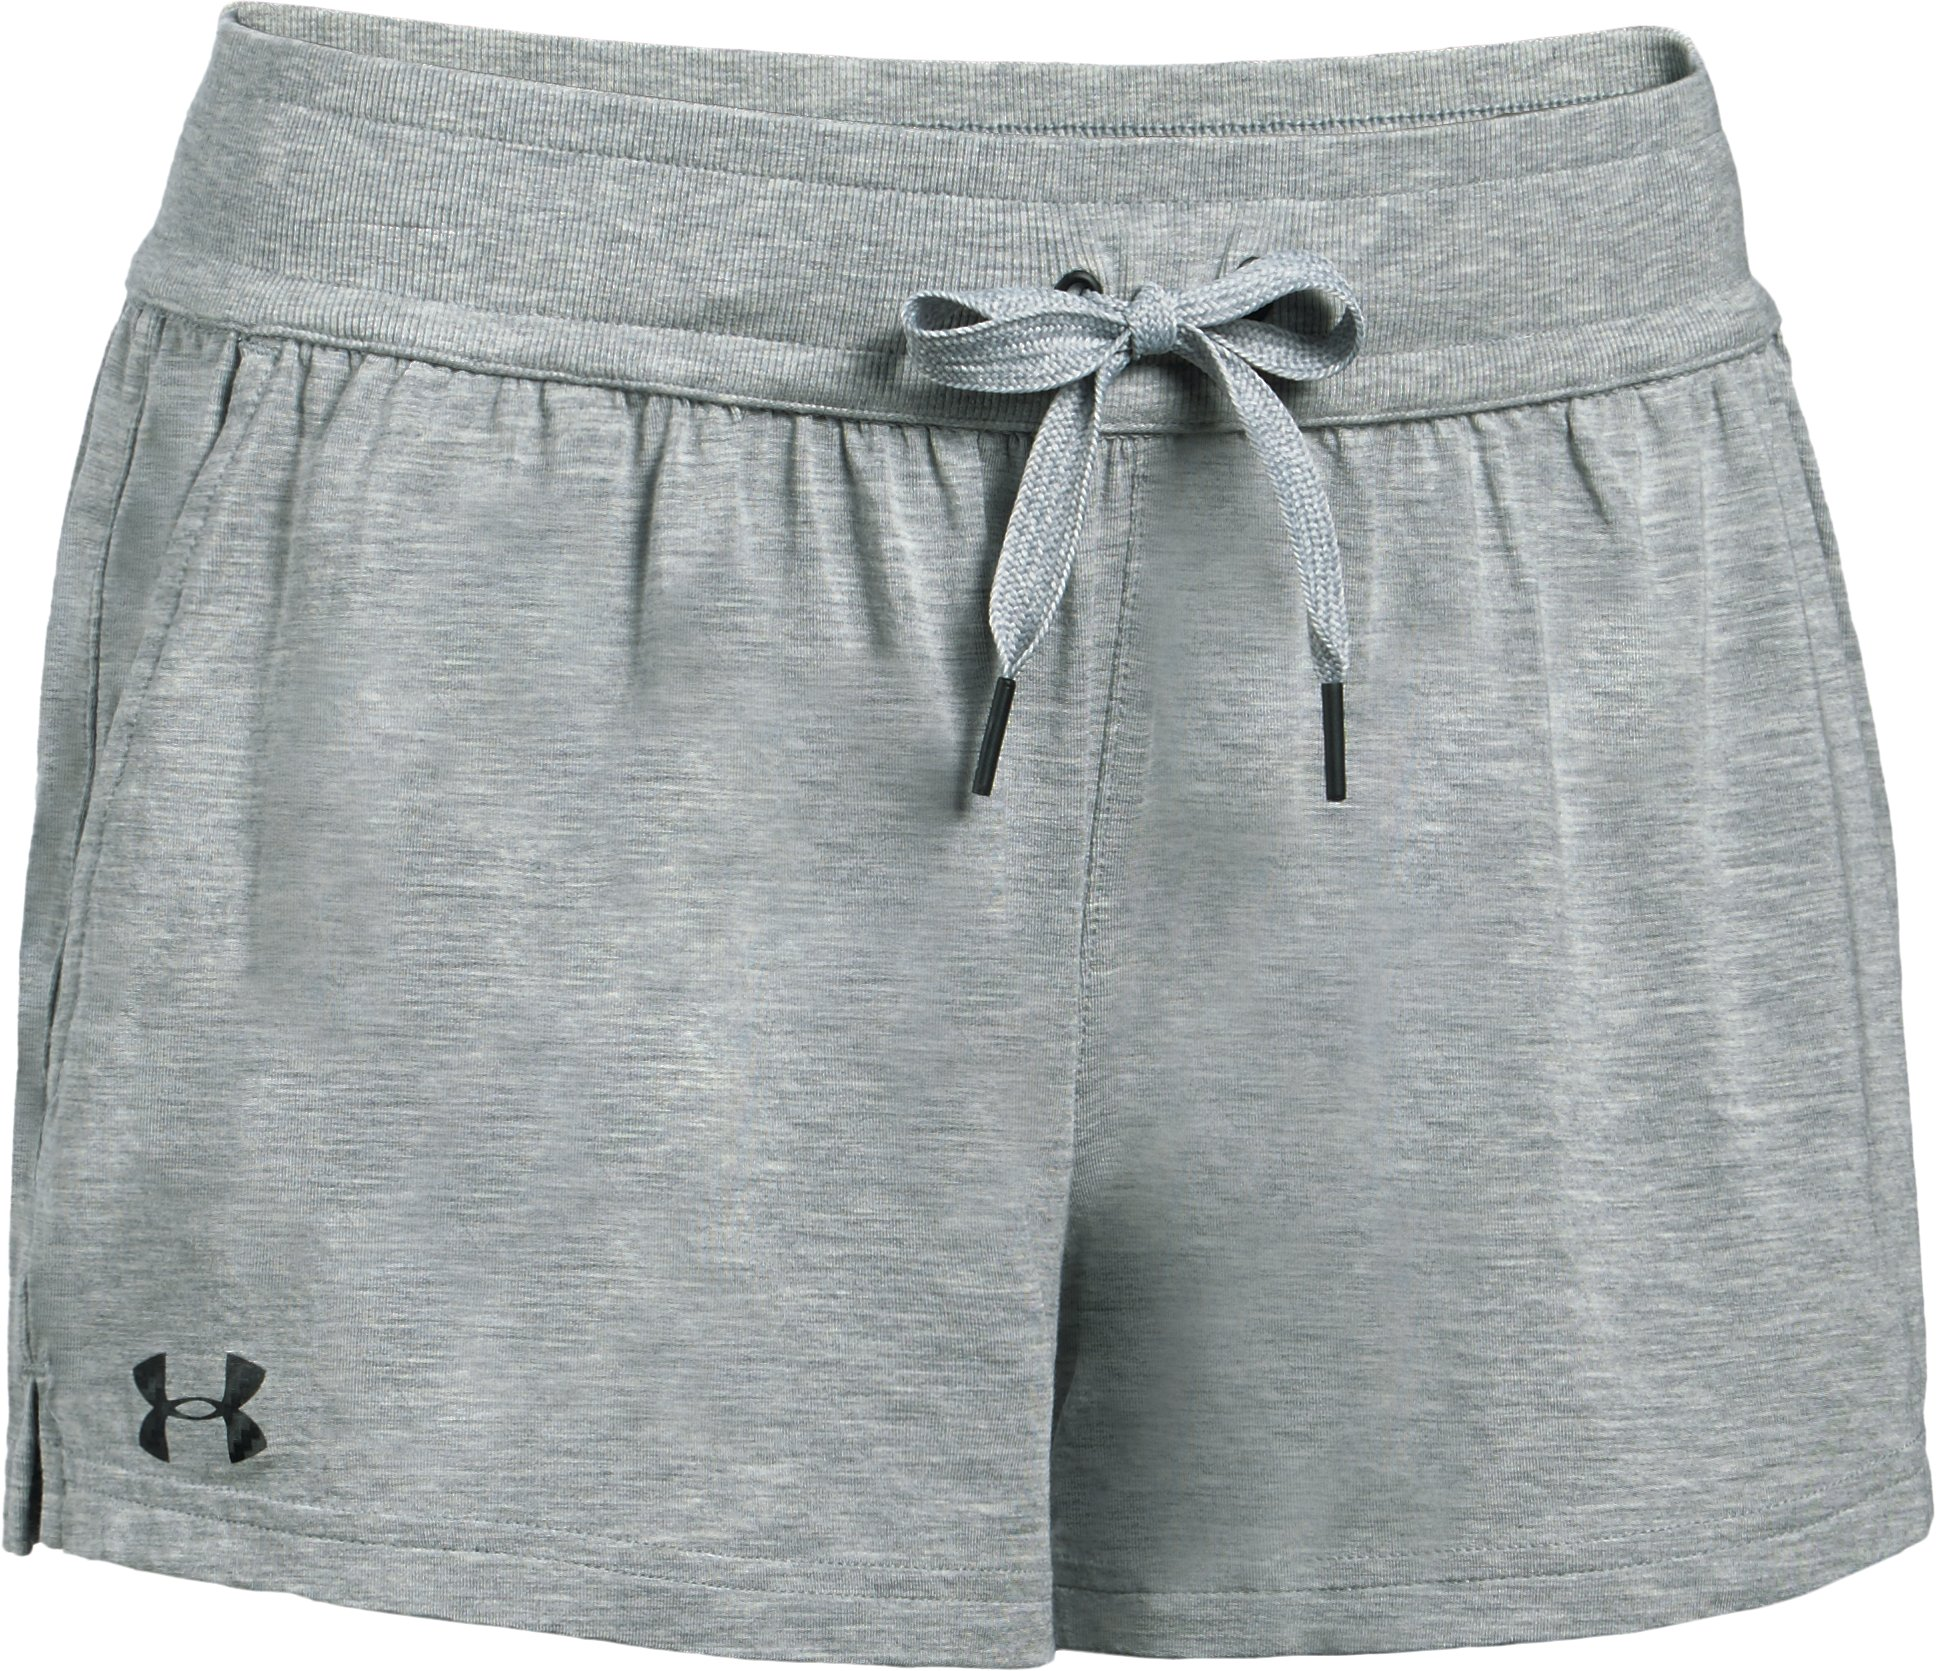 Women's Athlete Recovery Sleepwear Shorts, True Gray Heather